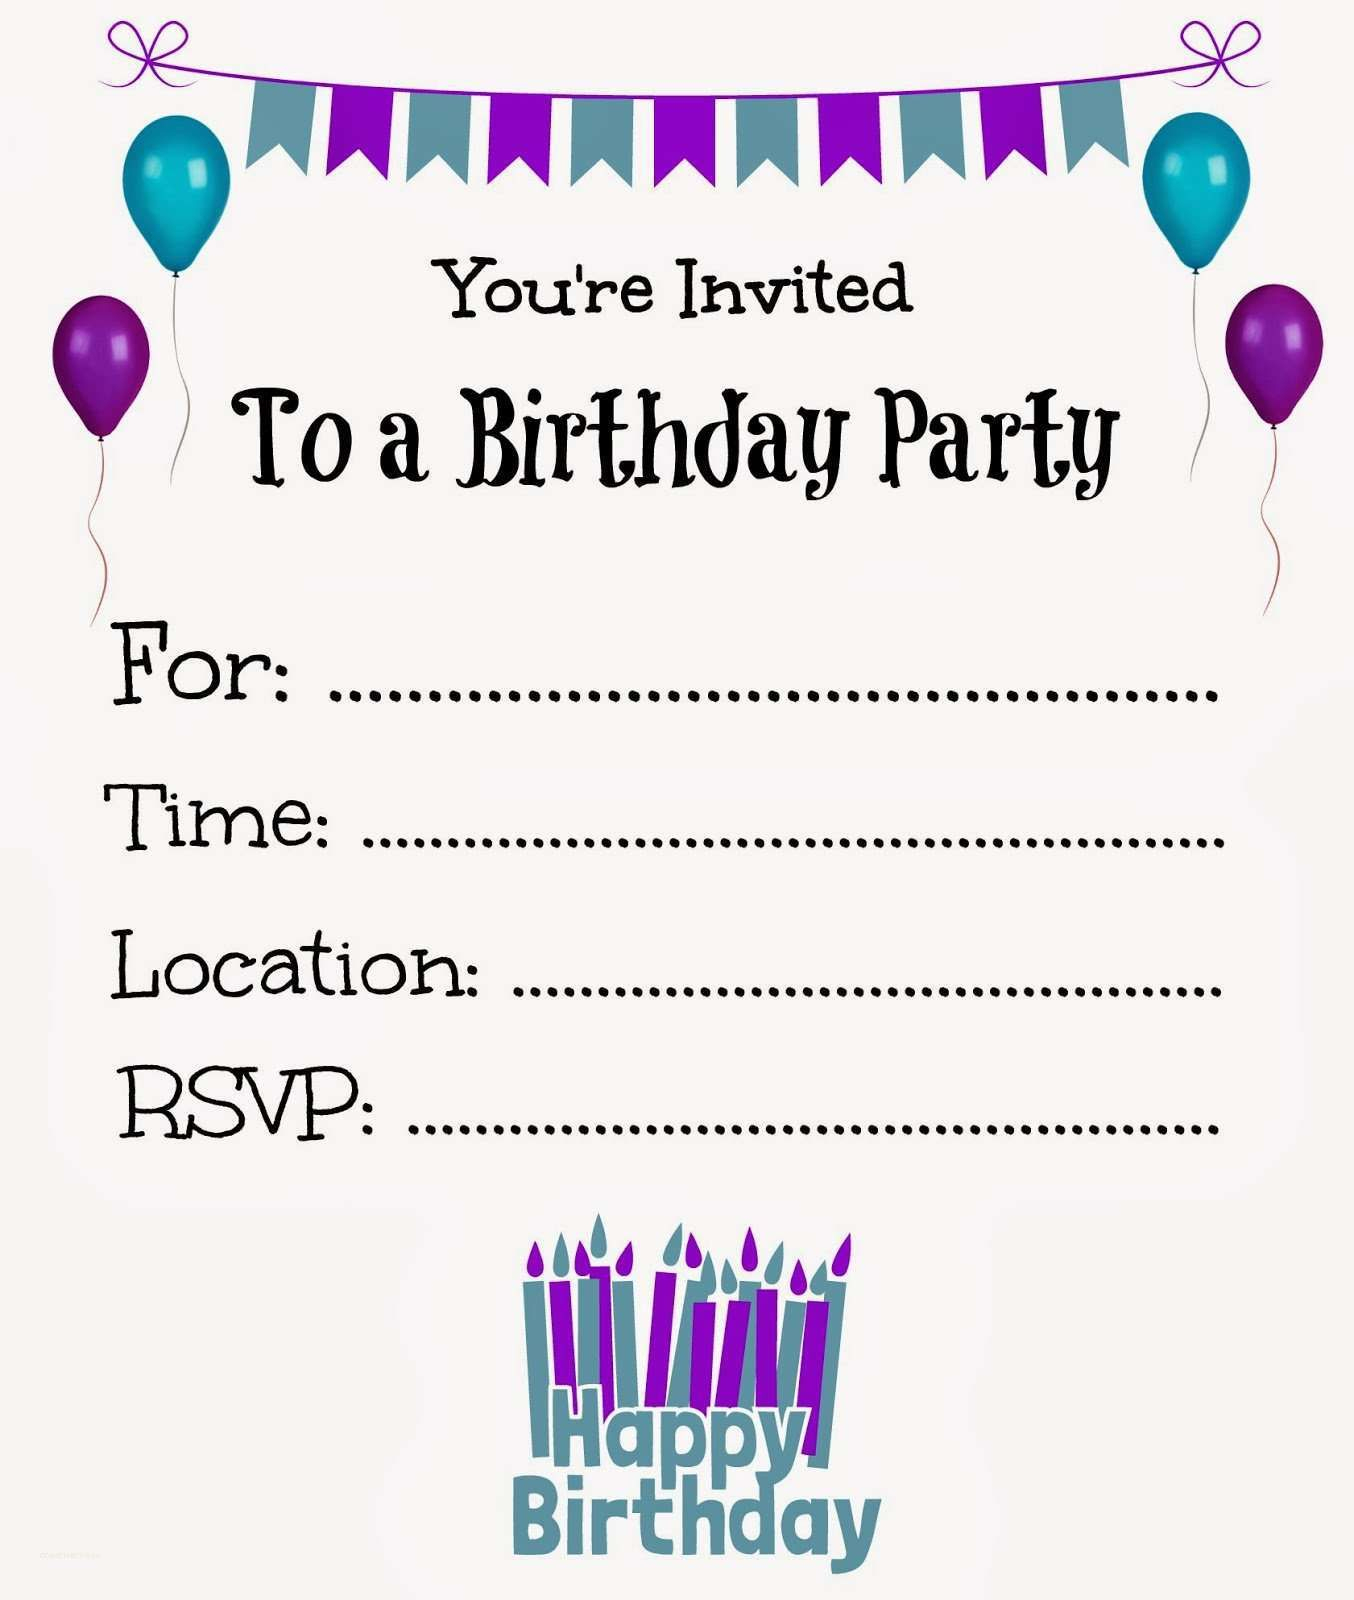 New Free Online Printable Birthday Party Invitations | Holiday - Free Printable Birthday Invitations With Pictures